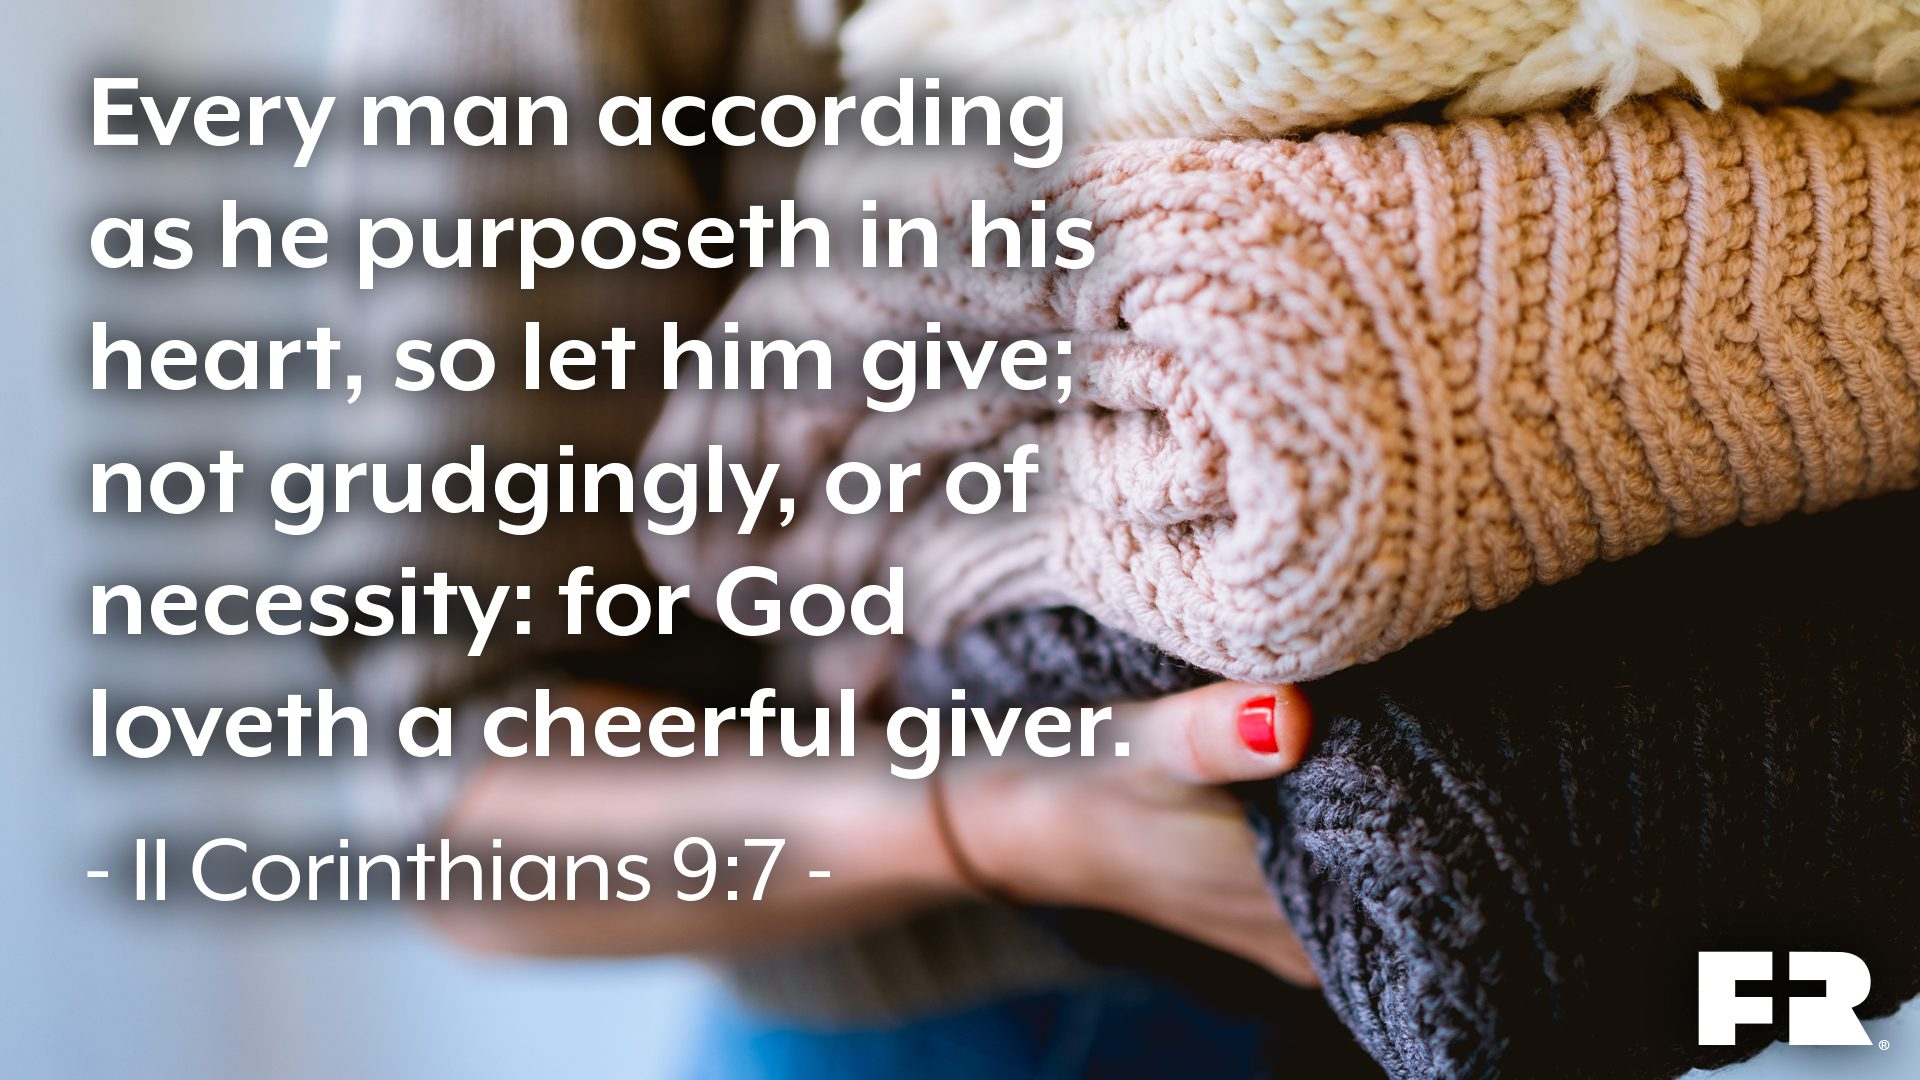 """Every man according as he purposeth in his heart, so let him give; not grudgingly, or of necessity: for God loveth a cheerful giver."""